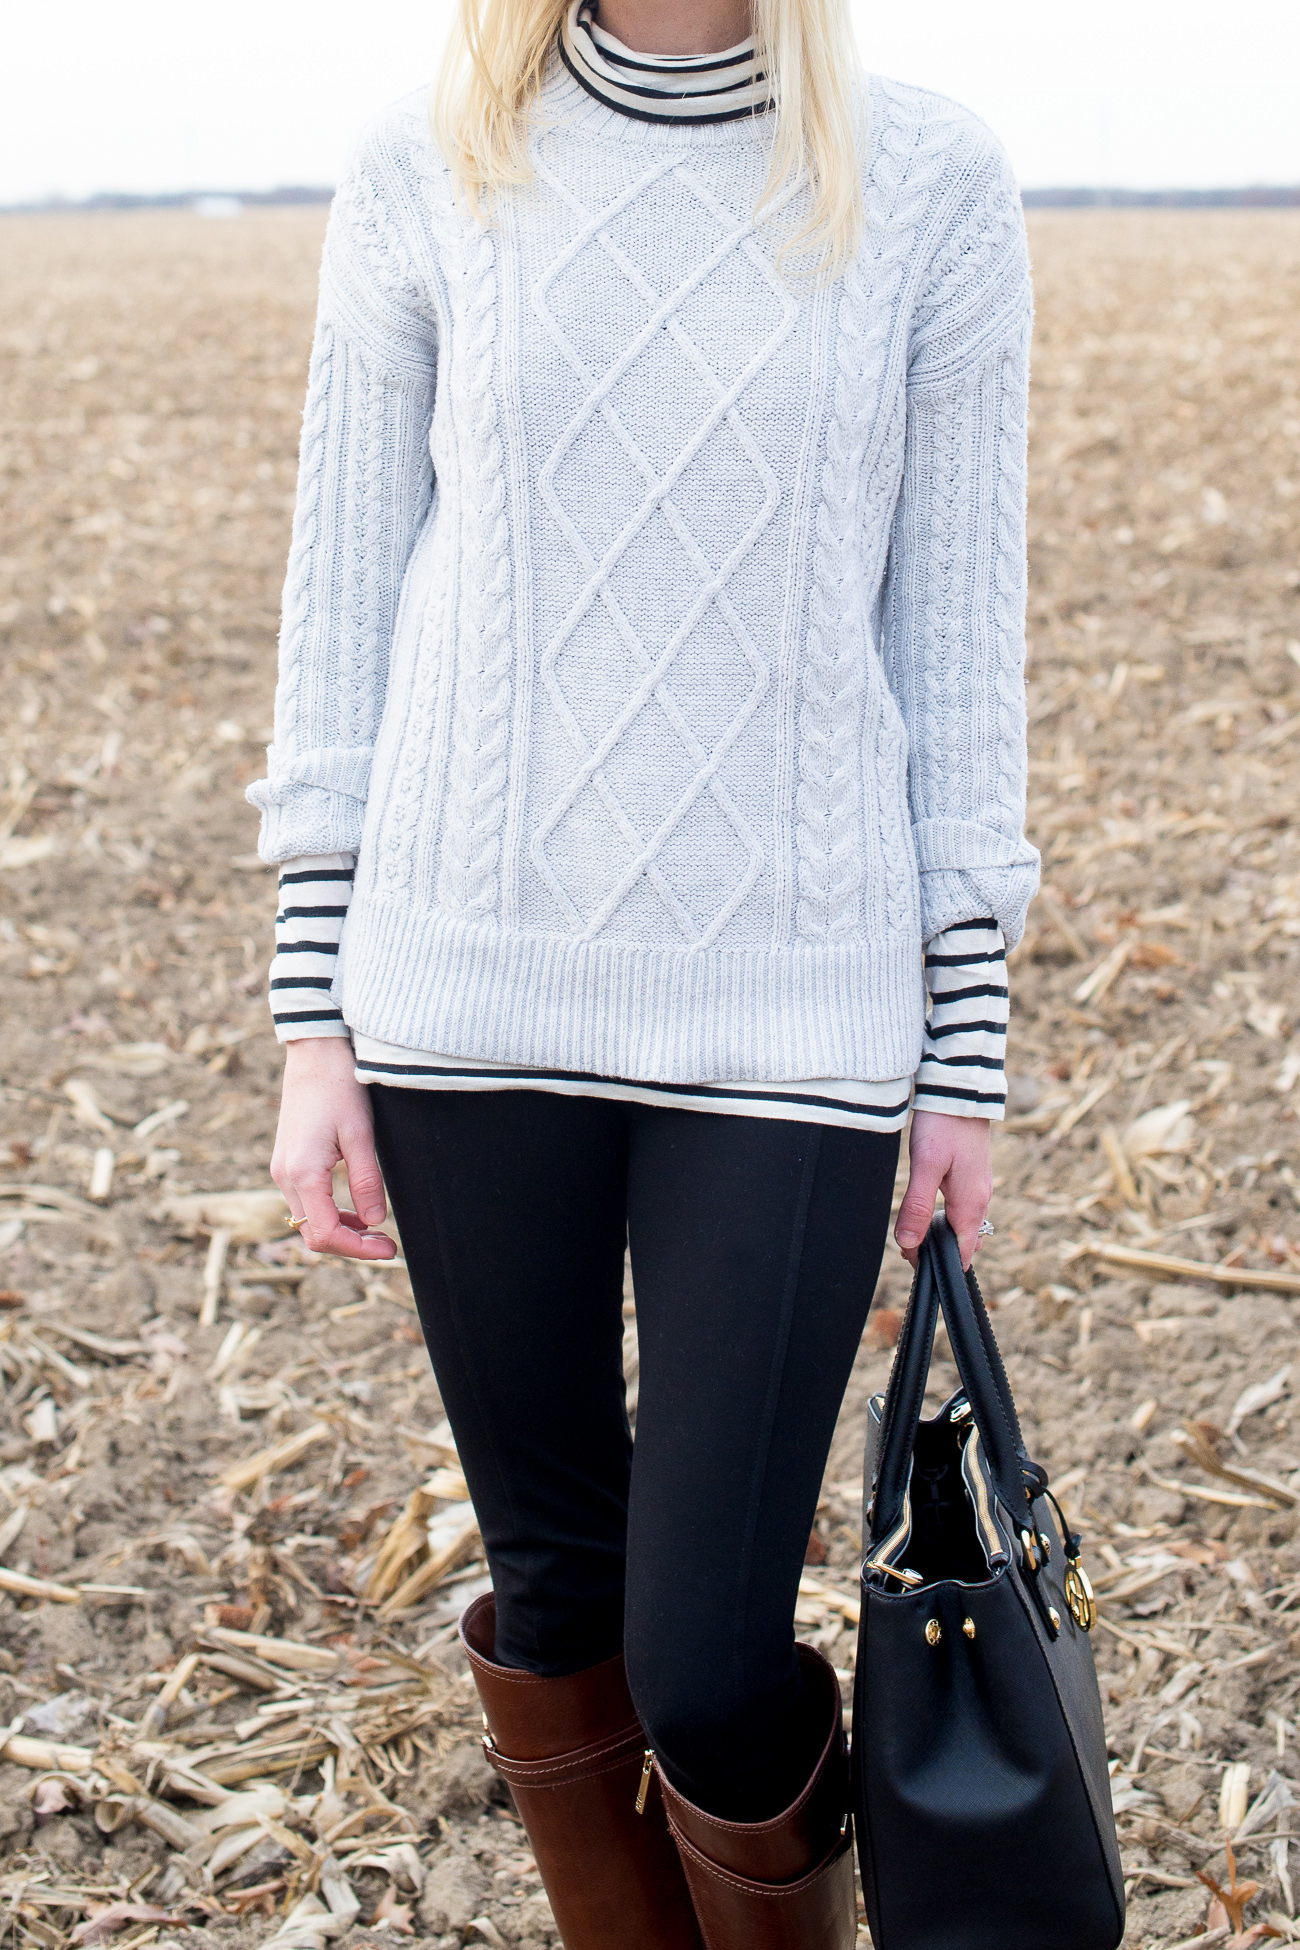 J.Crew Striped Turtleneck Cornfield-16